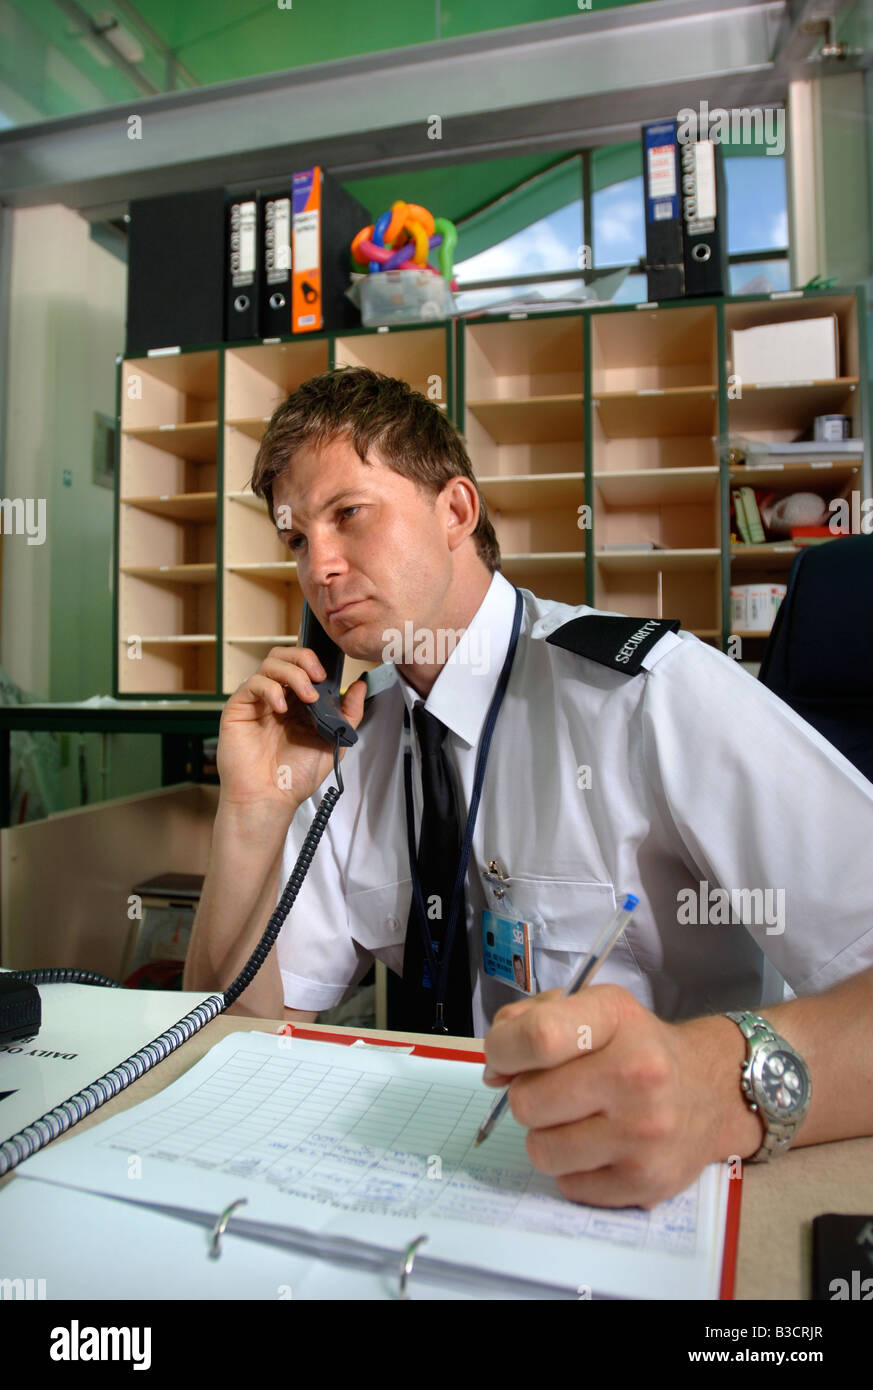 A Security Guard Answers A Phonecall And Makes An Entry In A Log Book Stock Photo Royalty Free